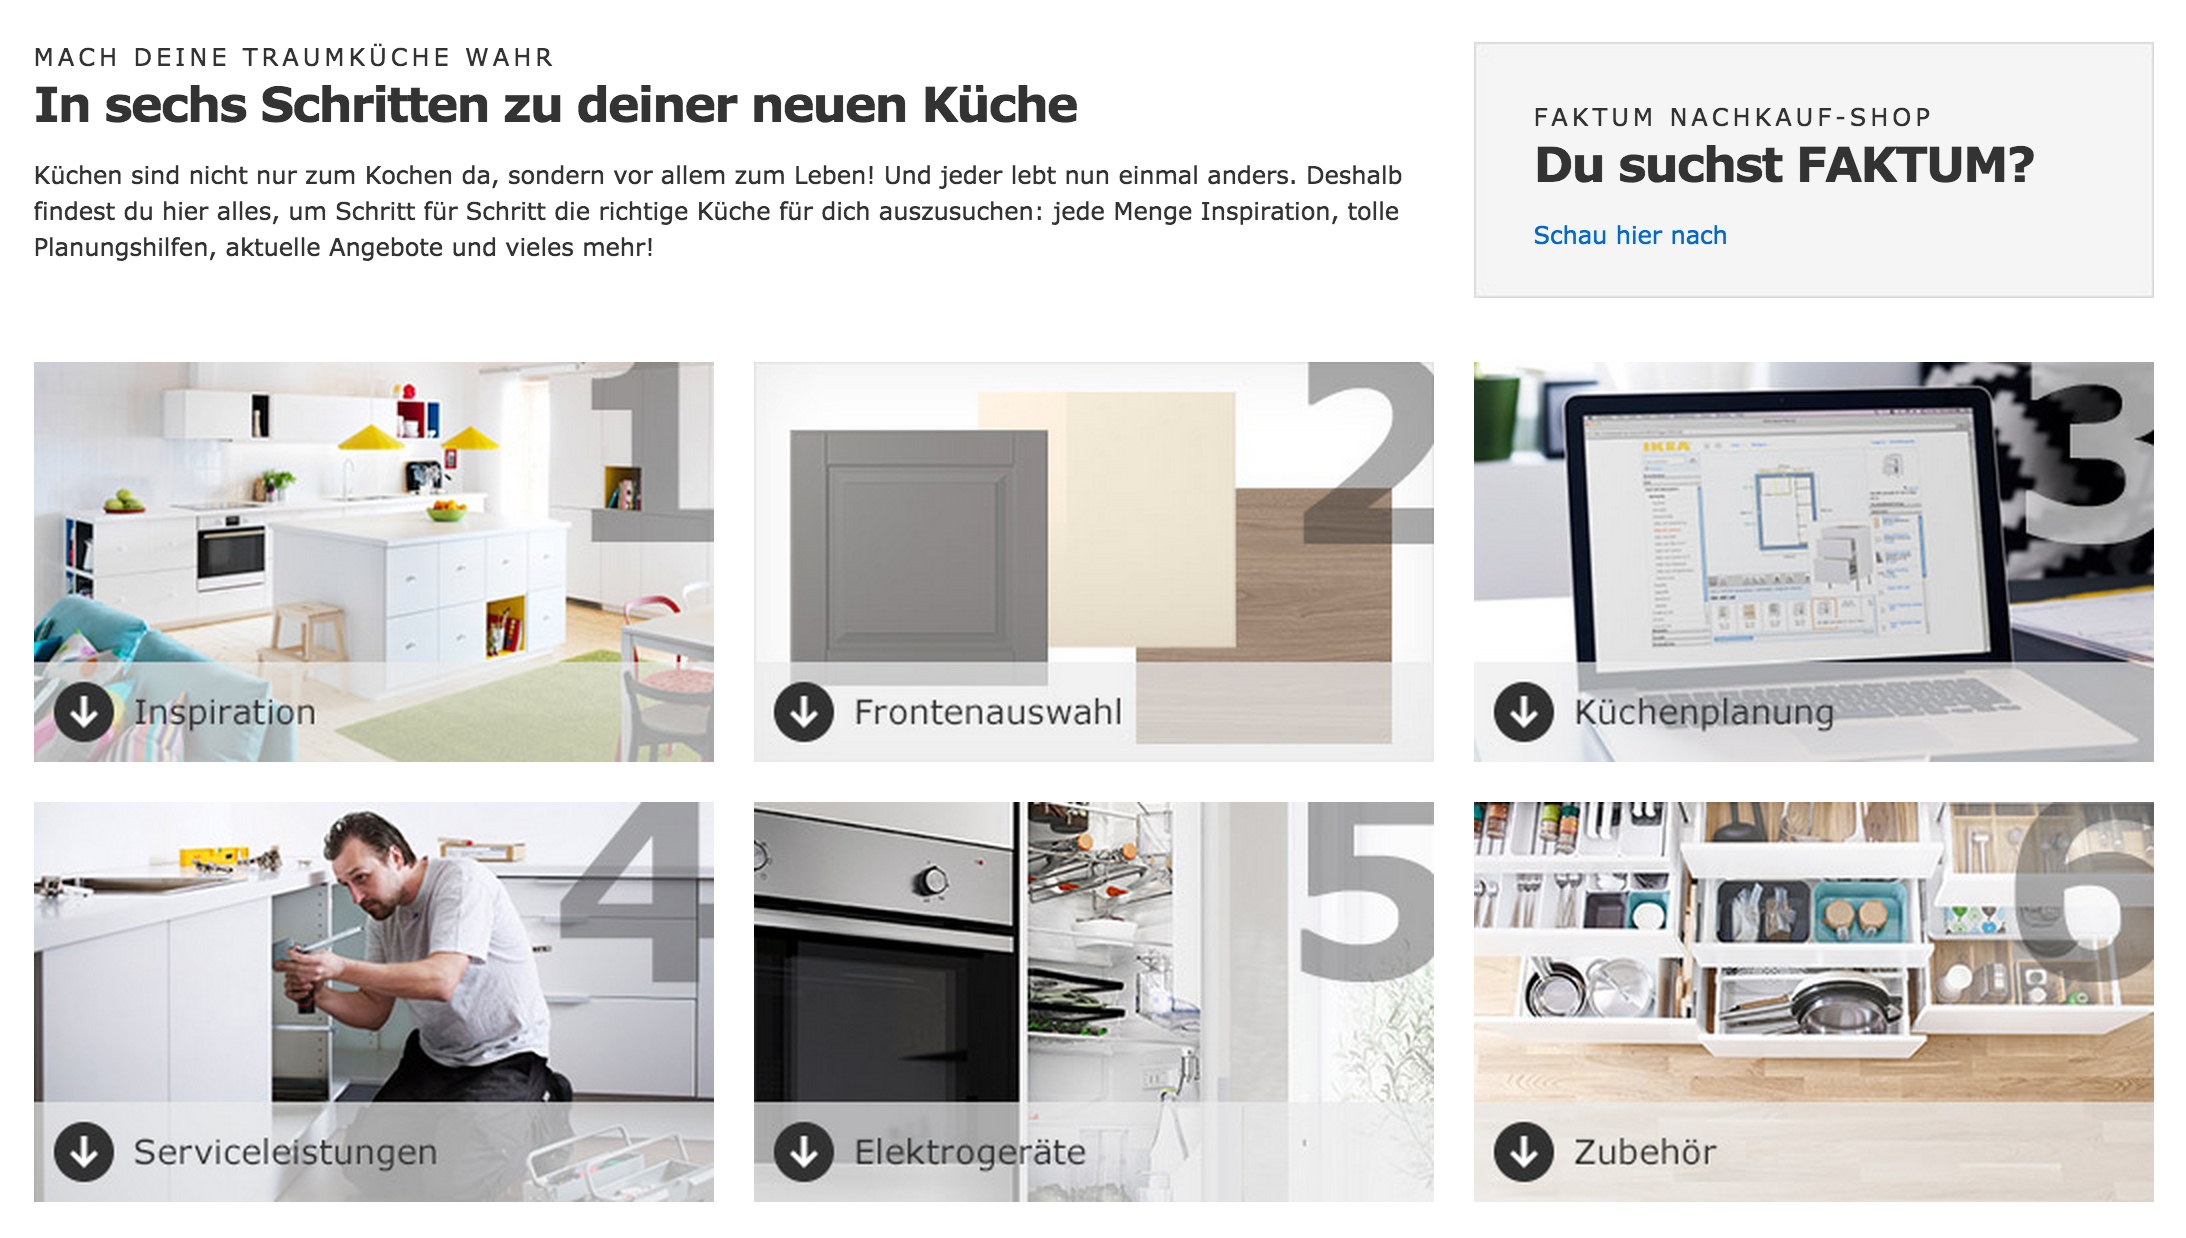 k chenkauf bei ikea erfahrungen mit der online k chenplanung franks blog. Black Bedroom Furniture Sets. Home Design Ideas